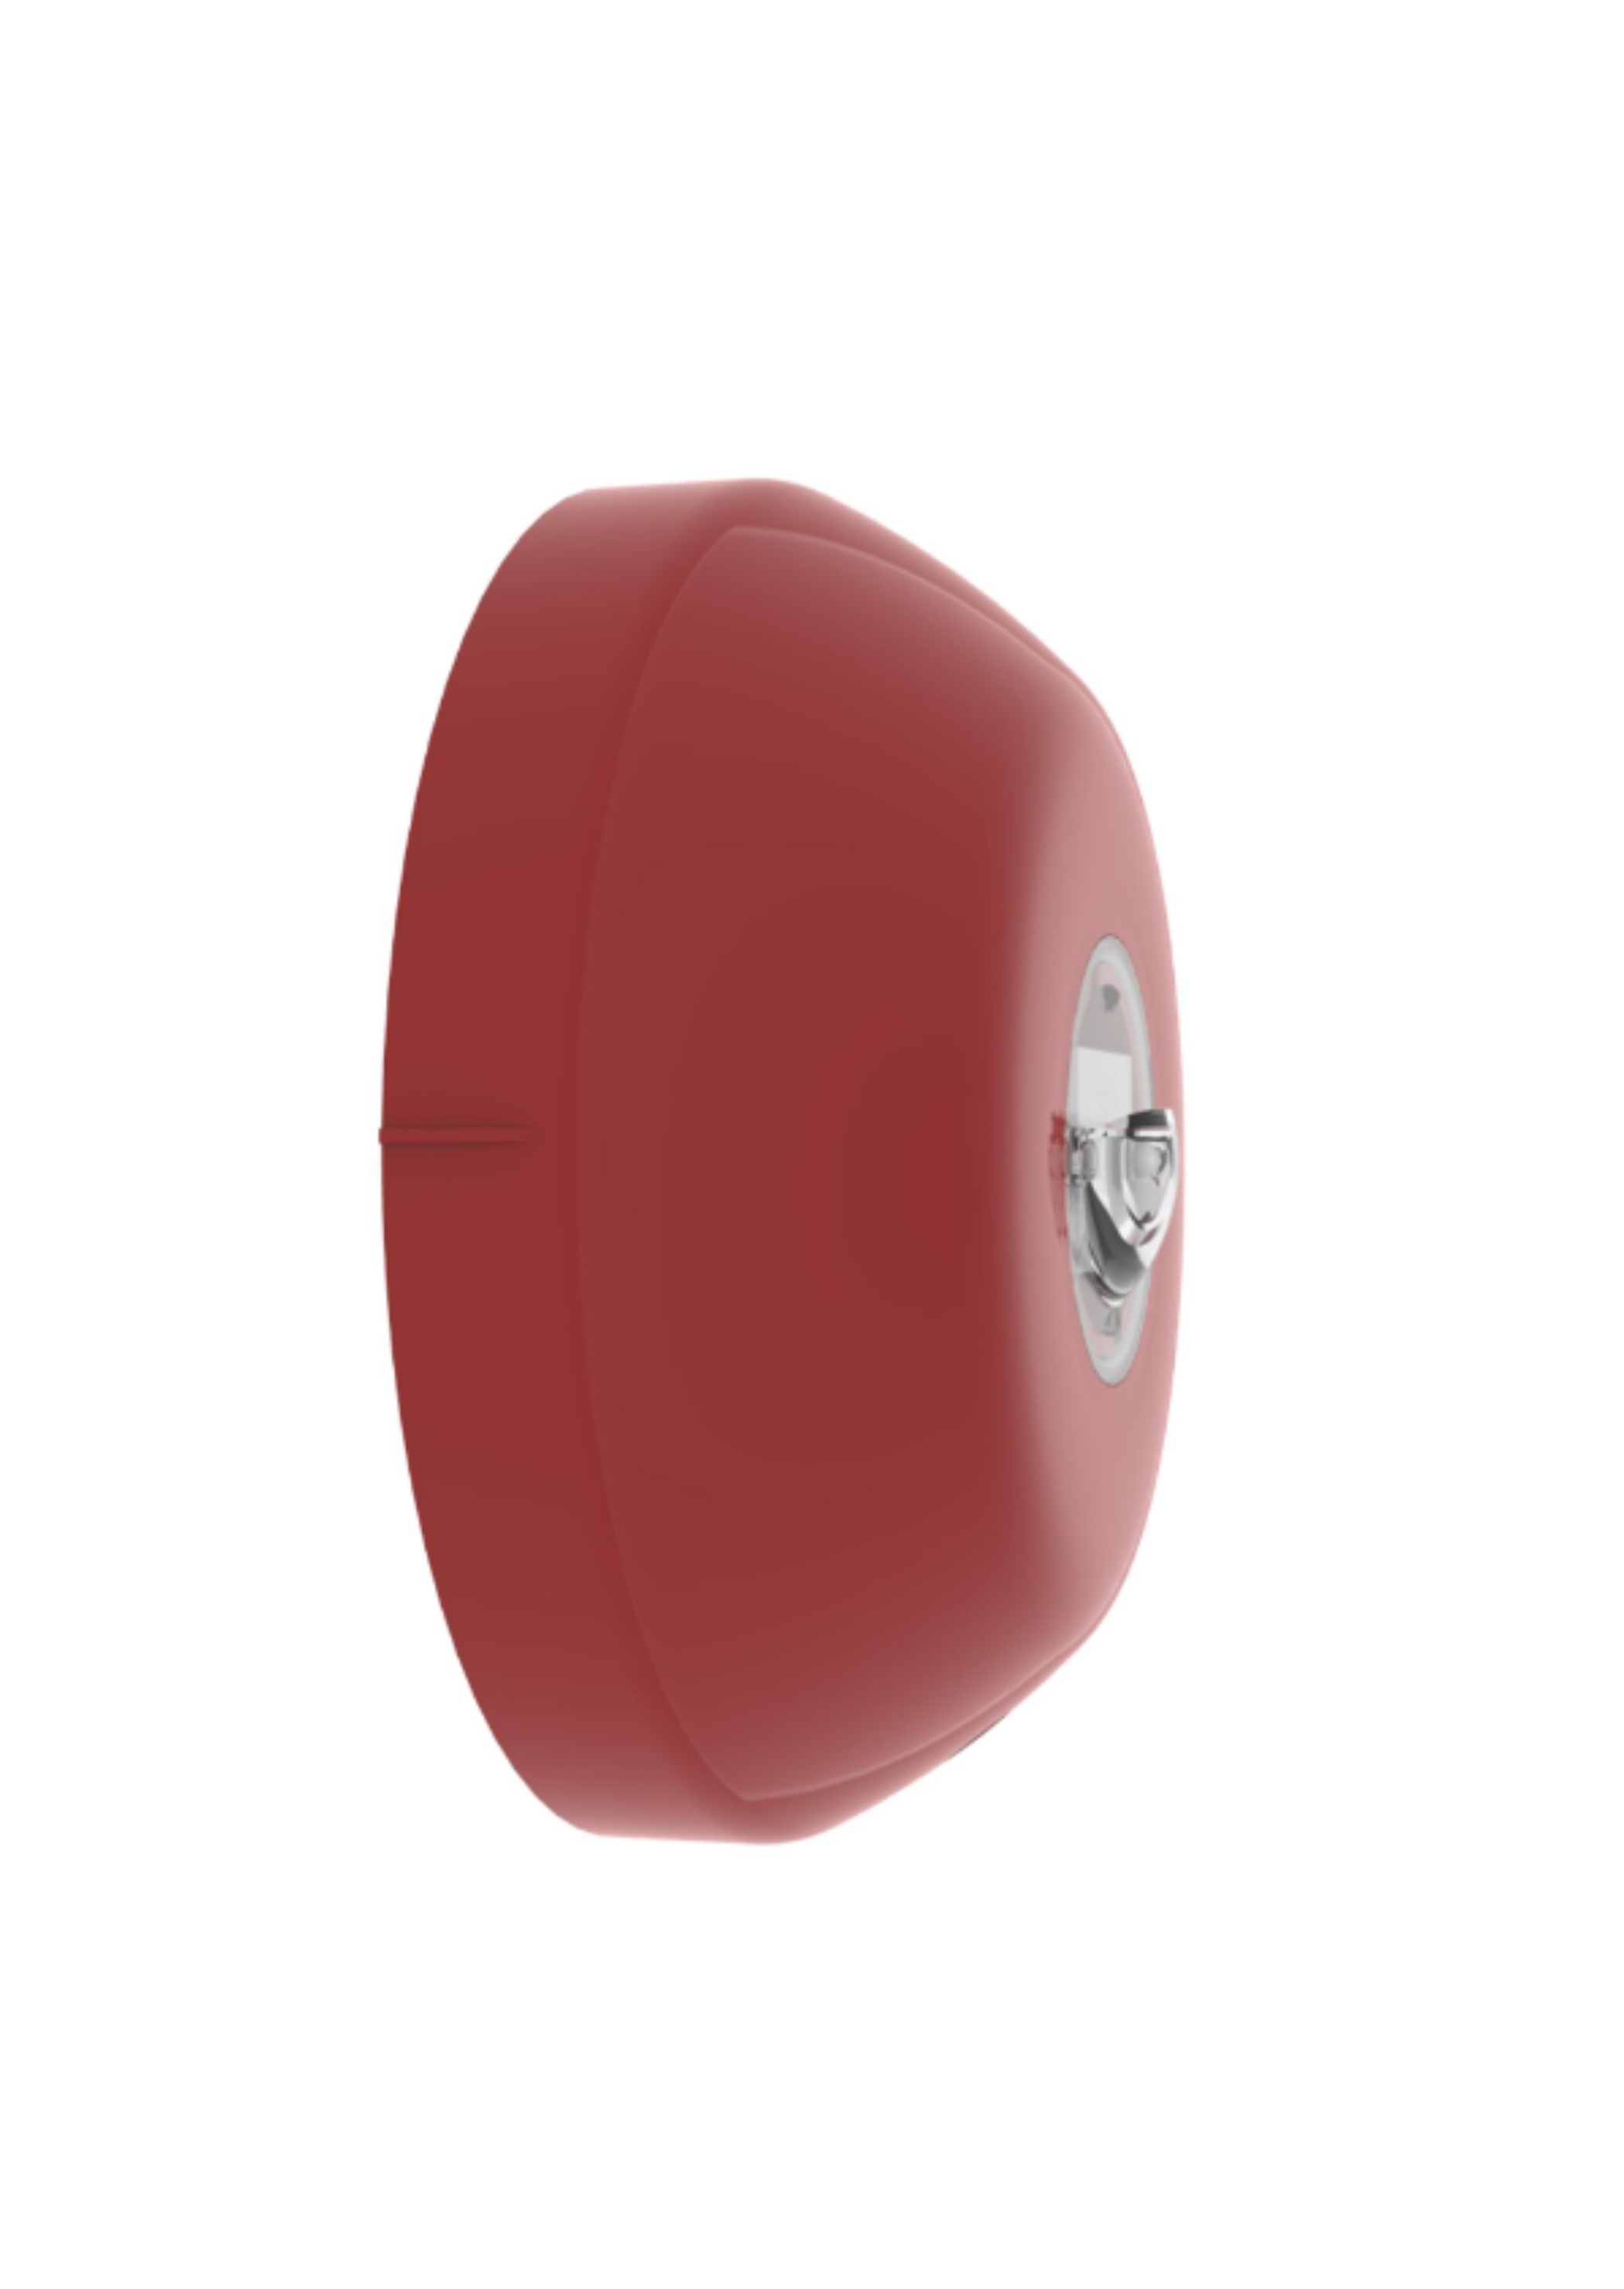 Wall Beacon - Red case, red LEDs 1460350-00